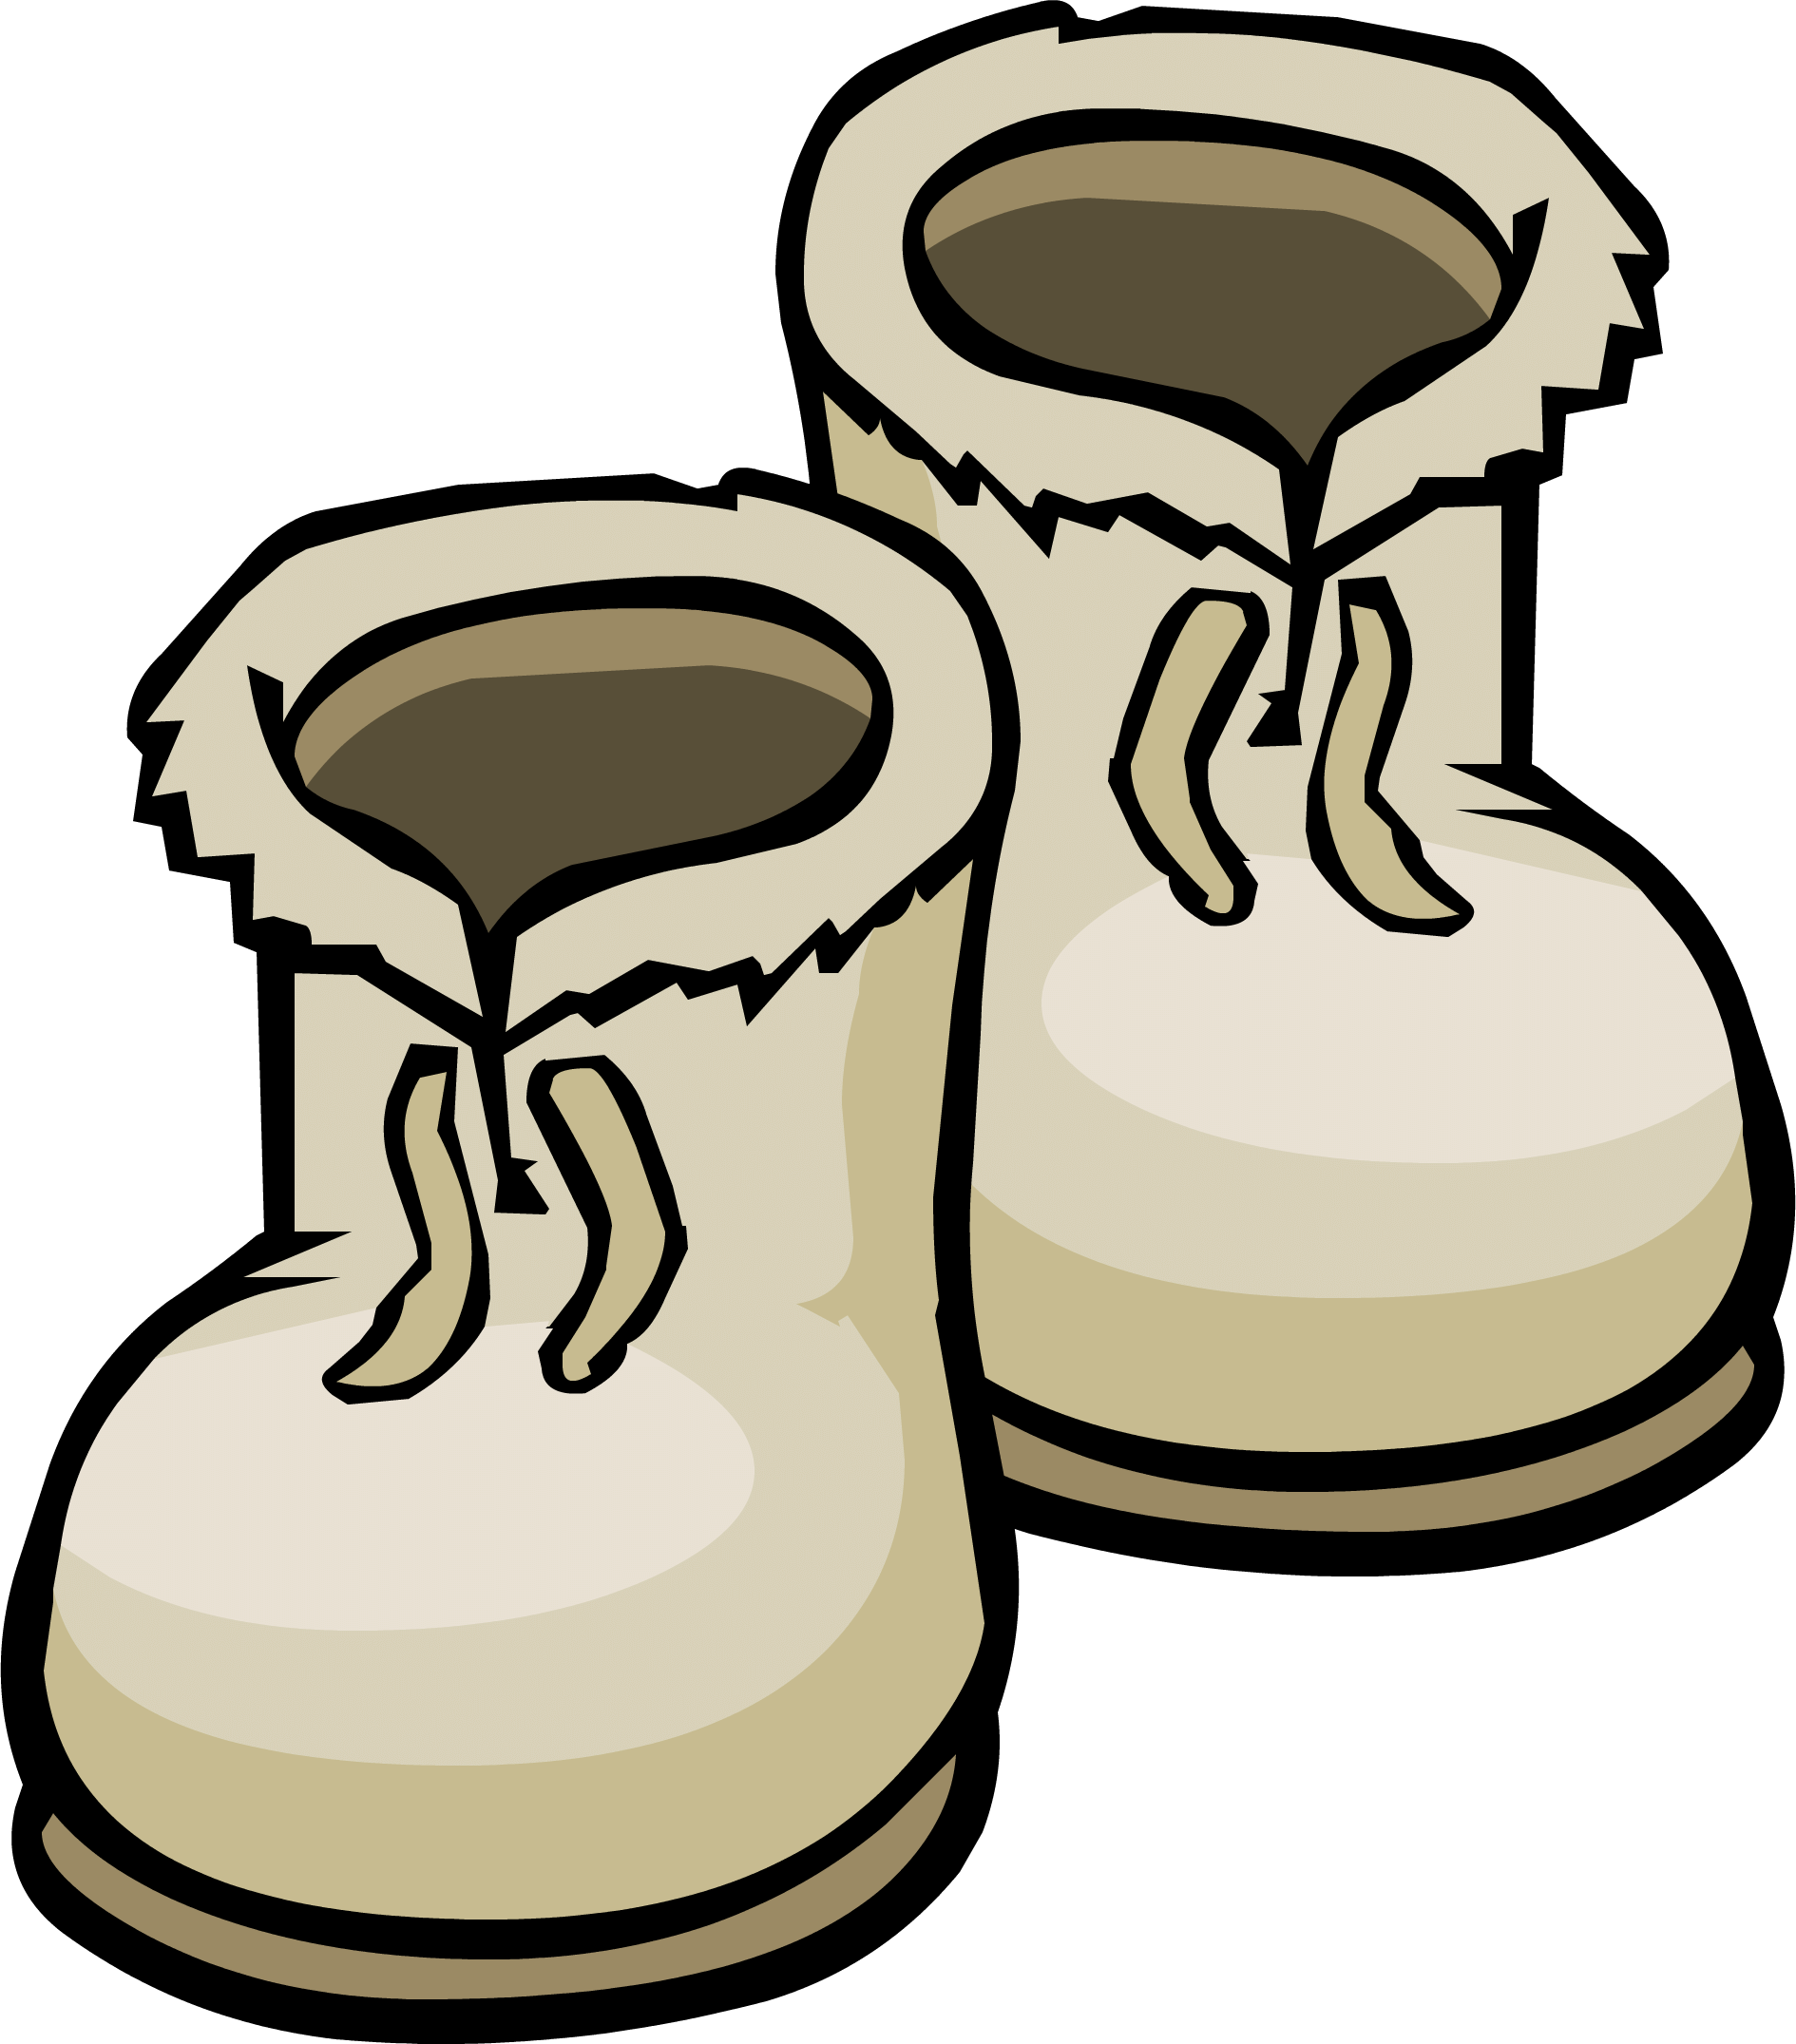 Winter clipart shoe. Snow boot free download